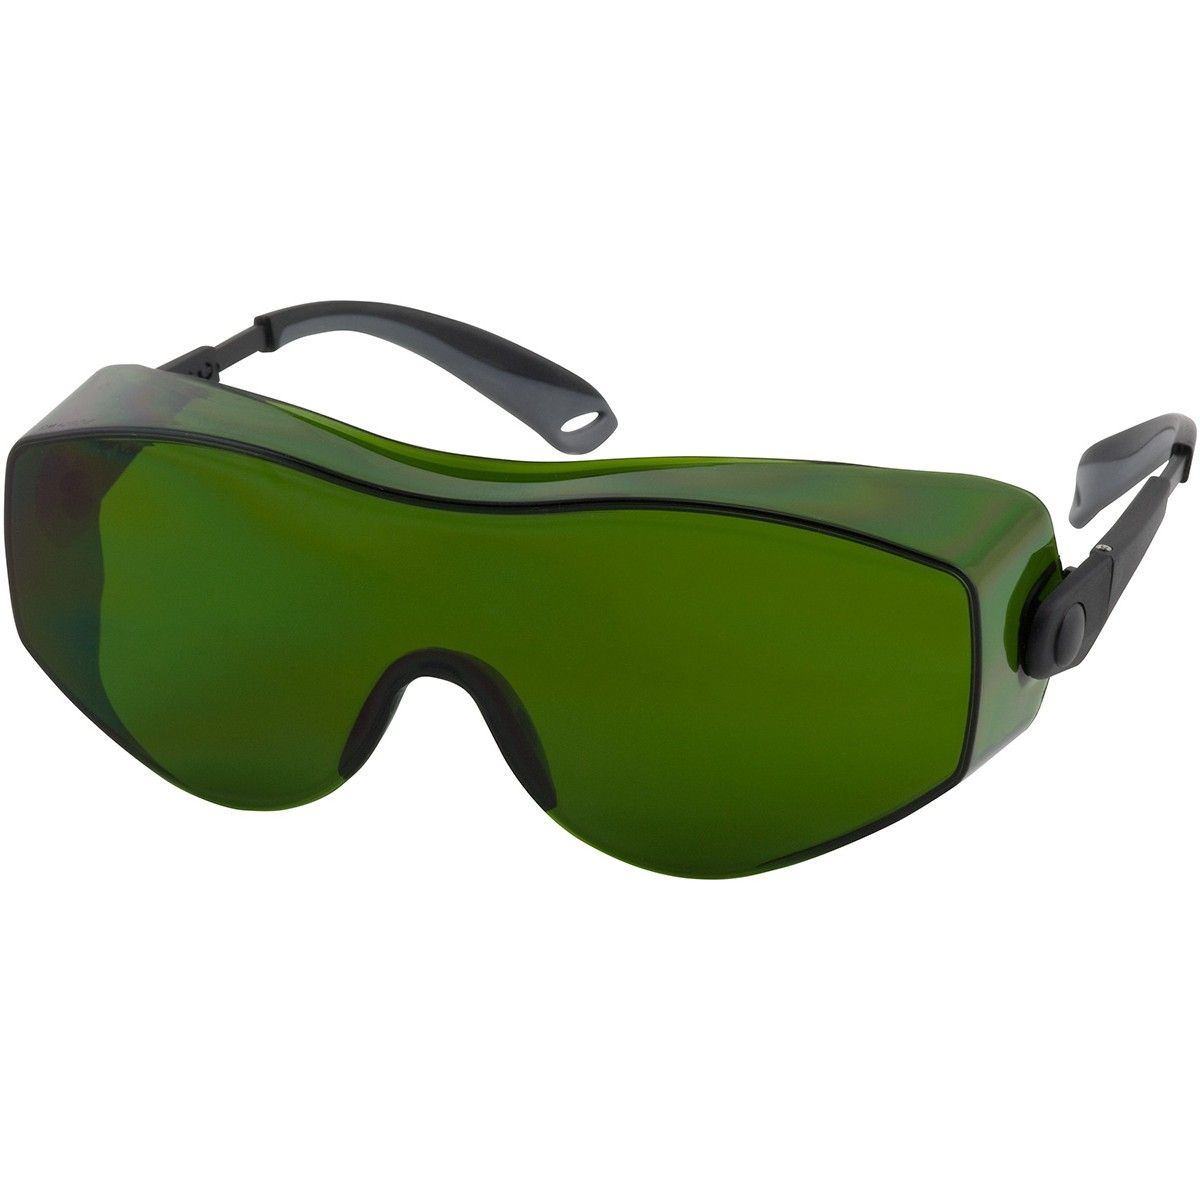 Bouton 250980013 OverSite Safety Glasses Gray Temples